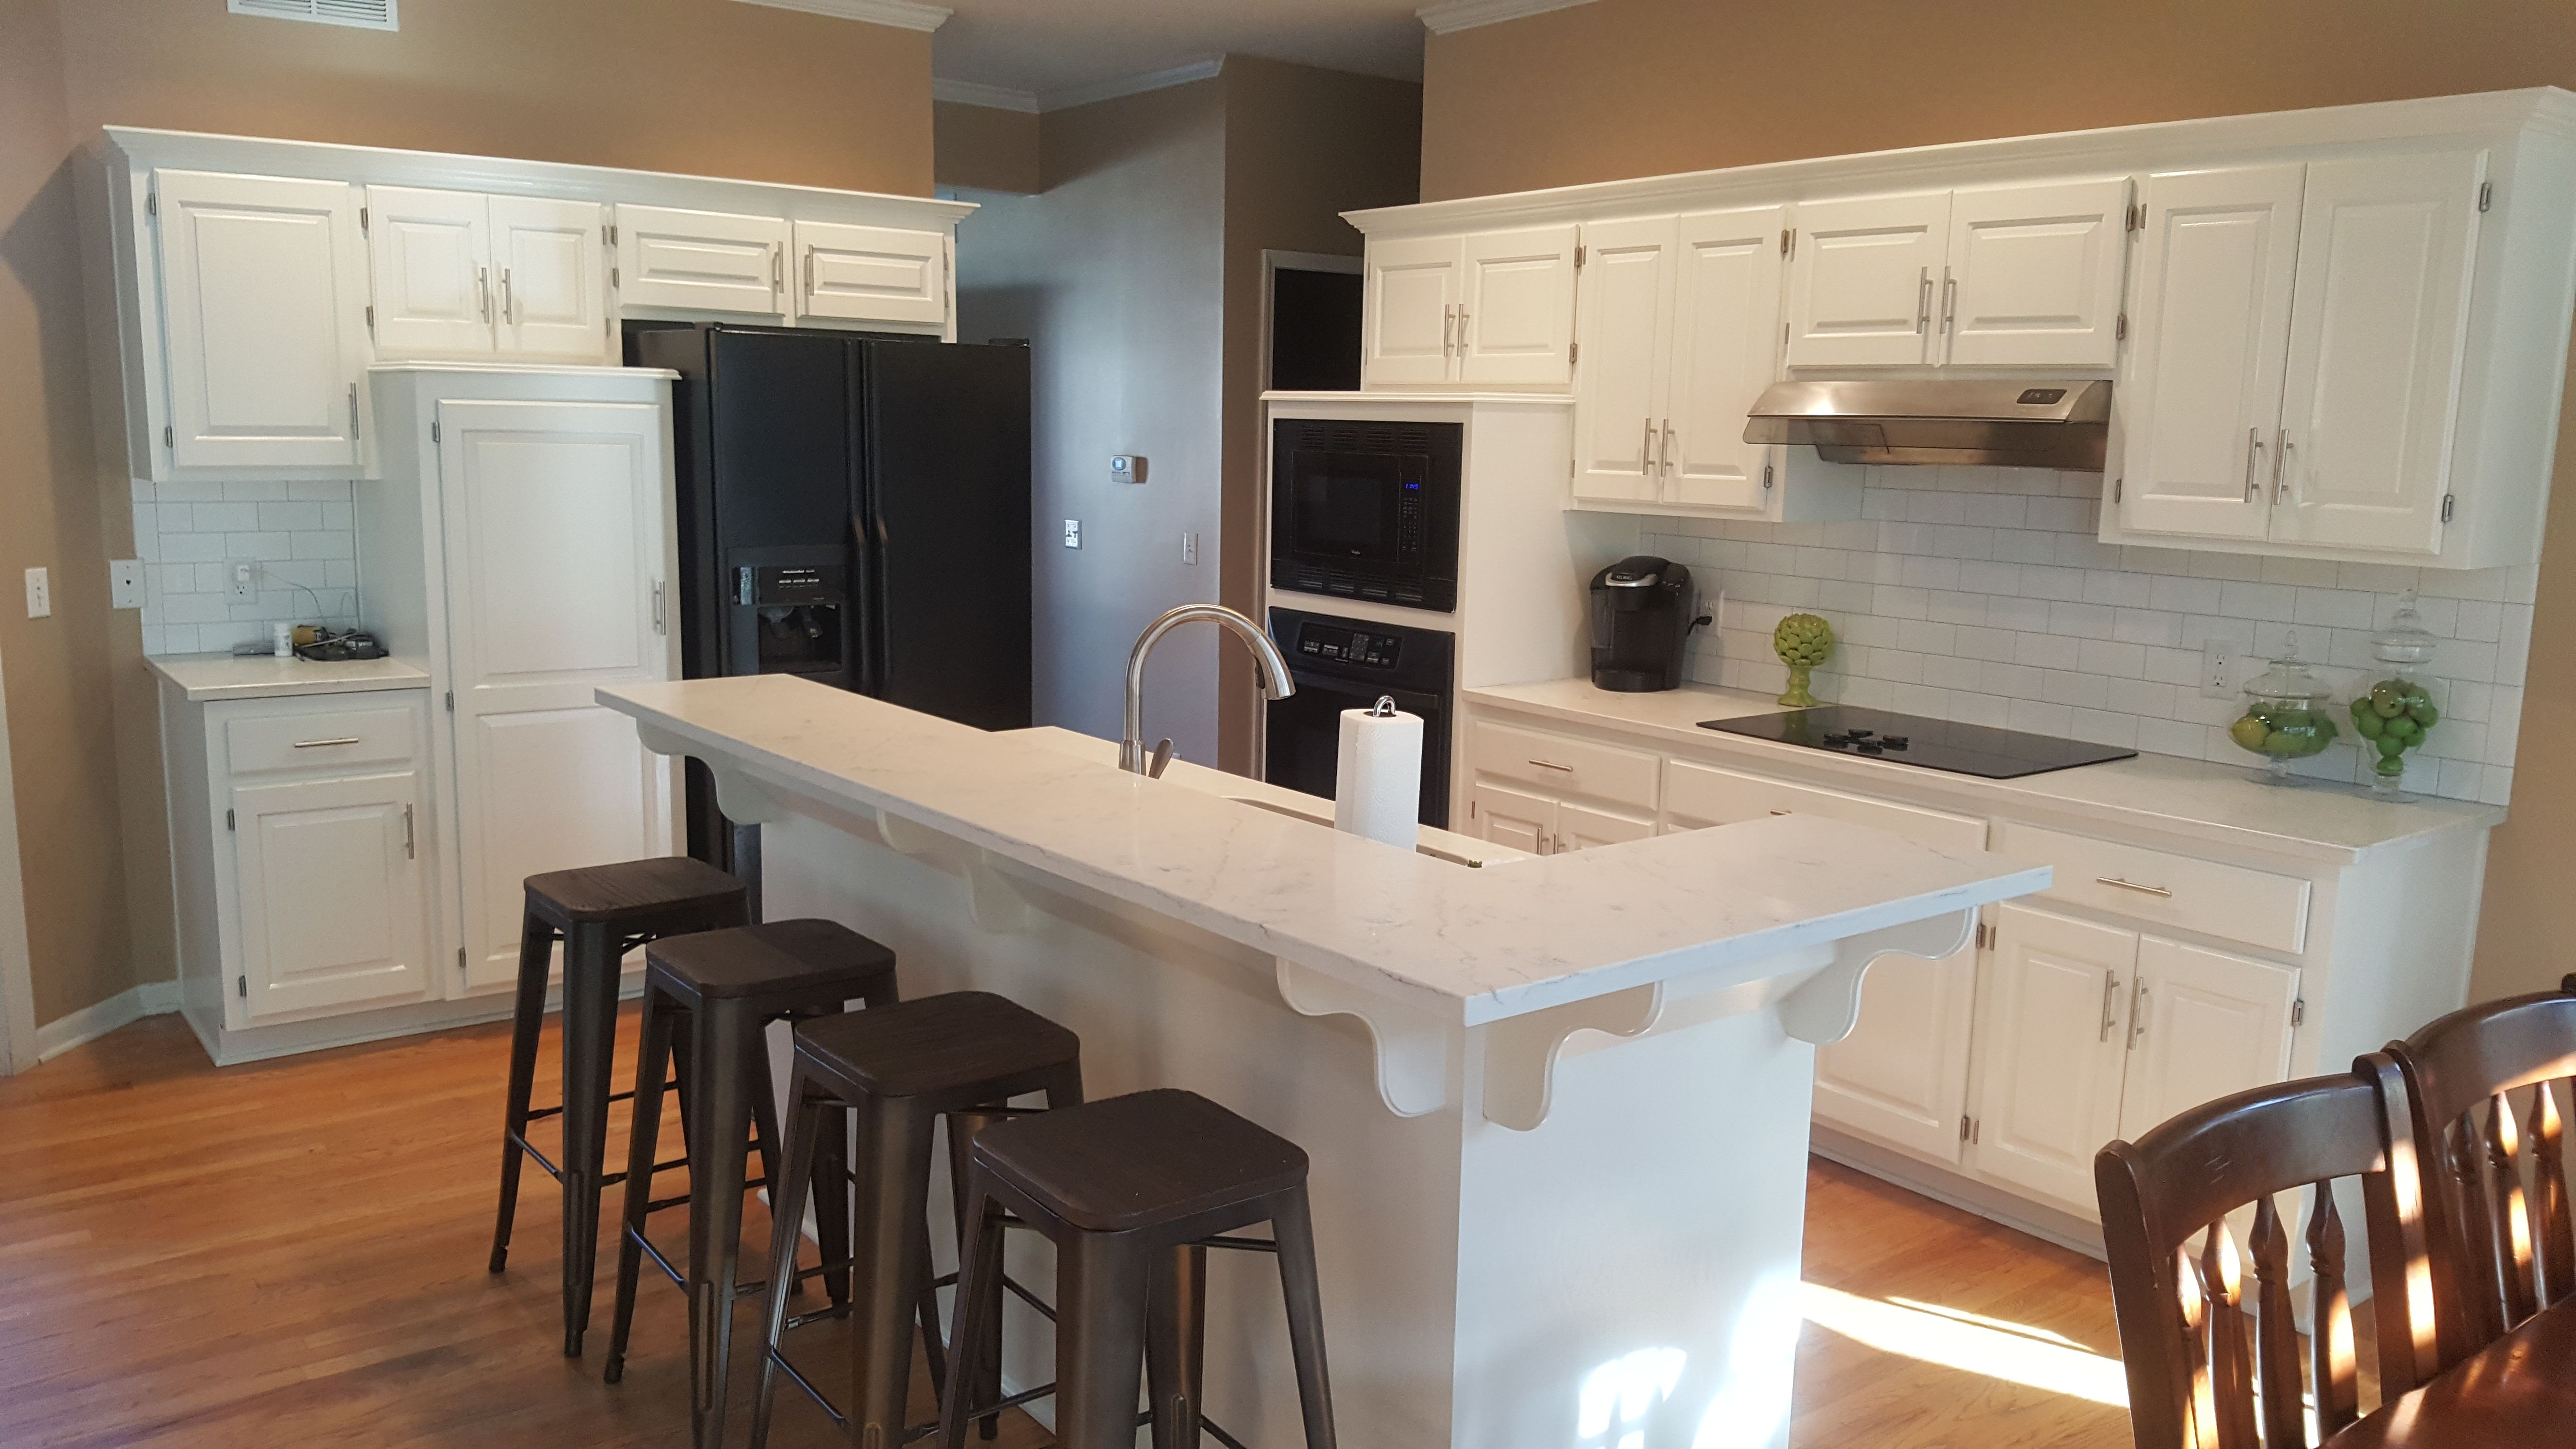 Custom Painted Cabinets By Riley Design Kc In 2020 Affordable Cabinets Cabinetry Painting Cabinets